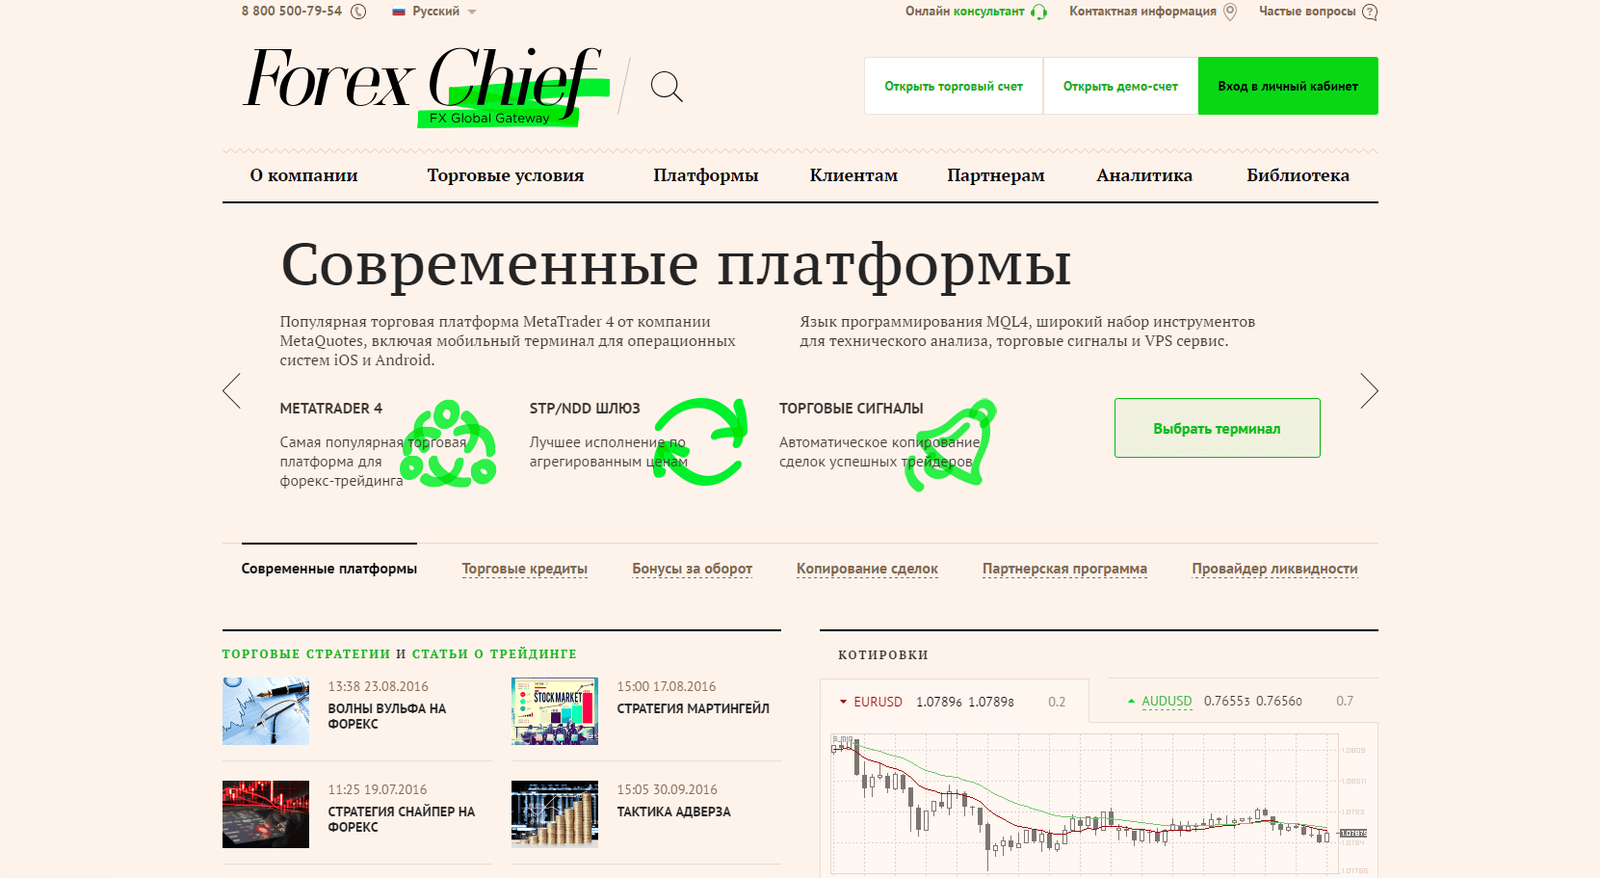 ForexChief-2